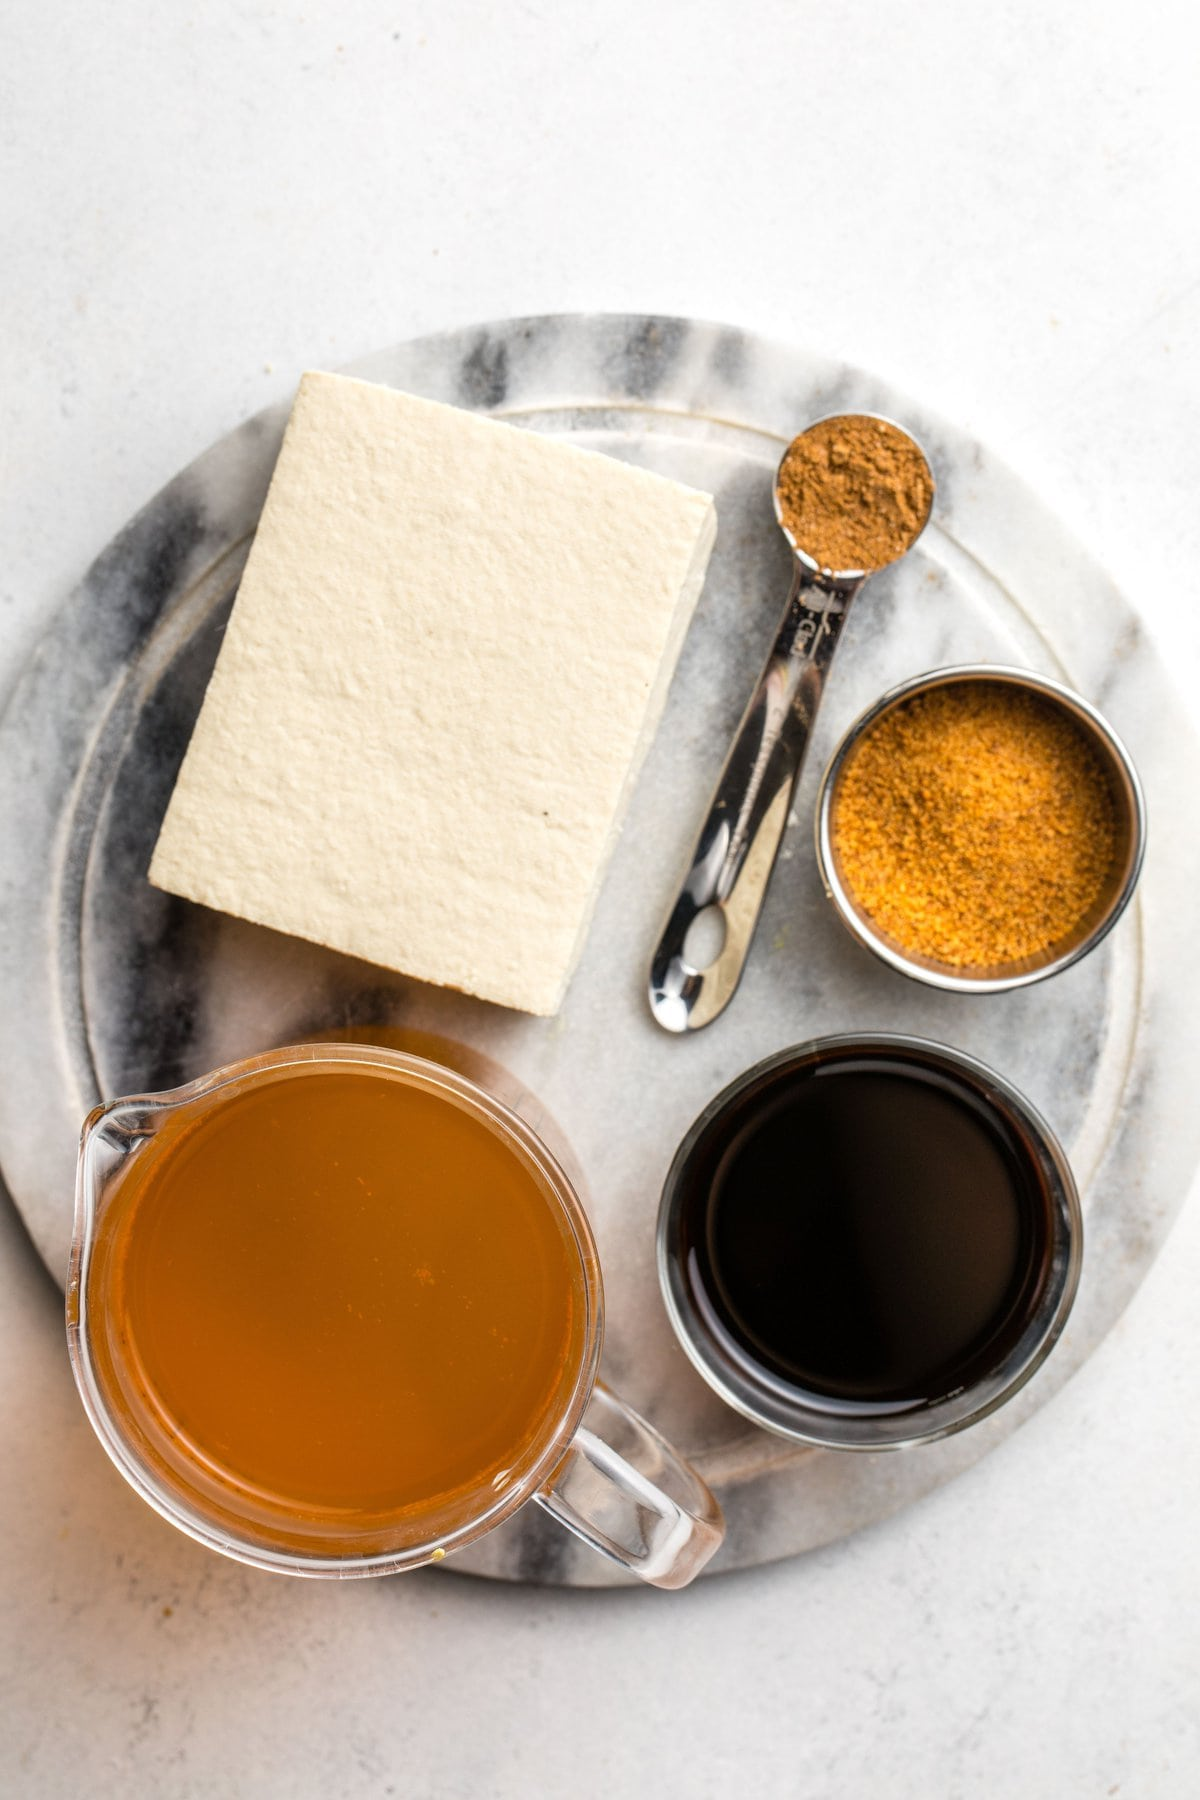 ingredients for braised tofu on marble cutting board